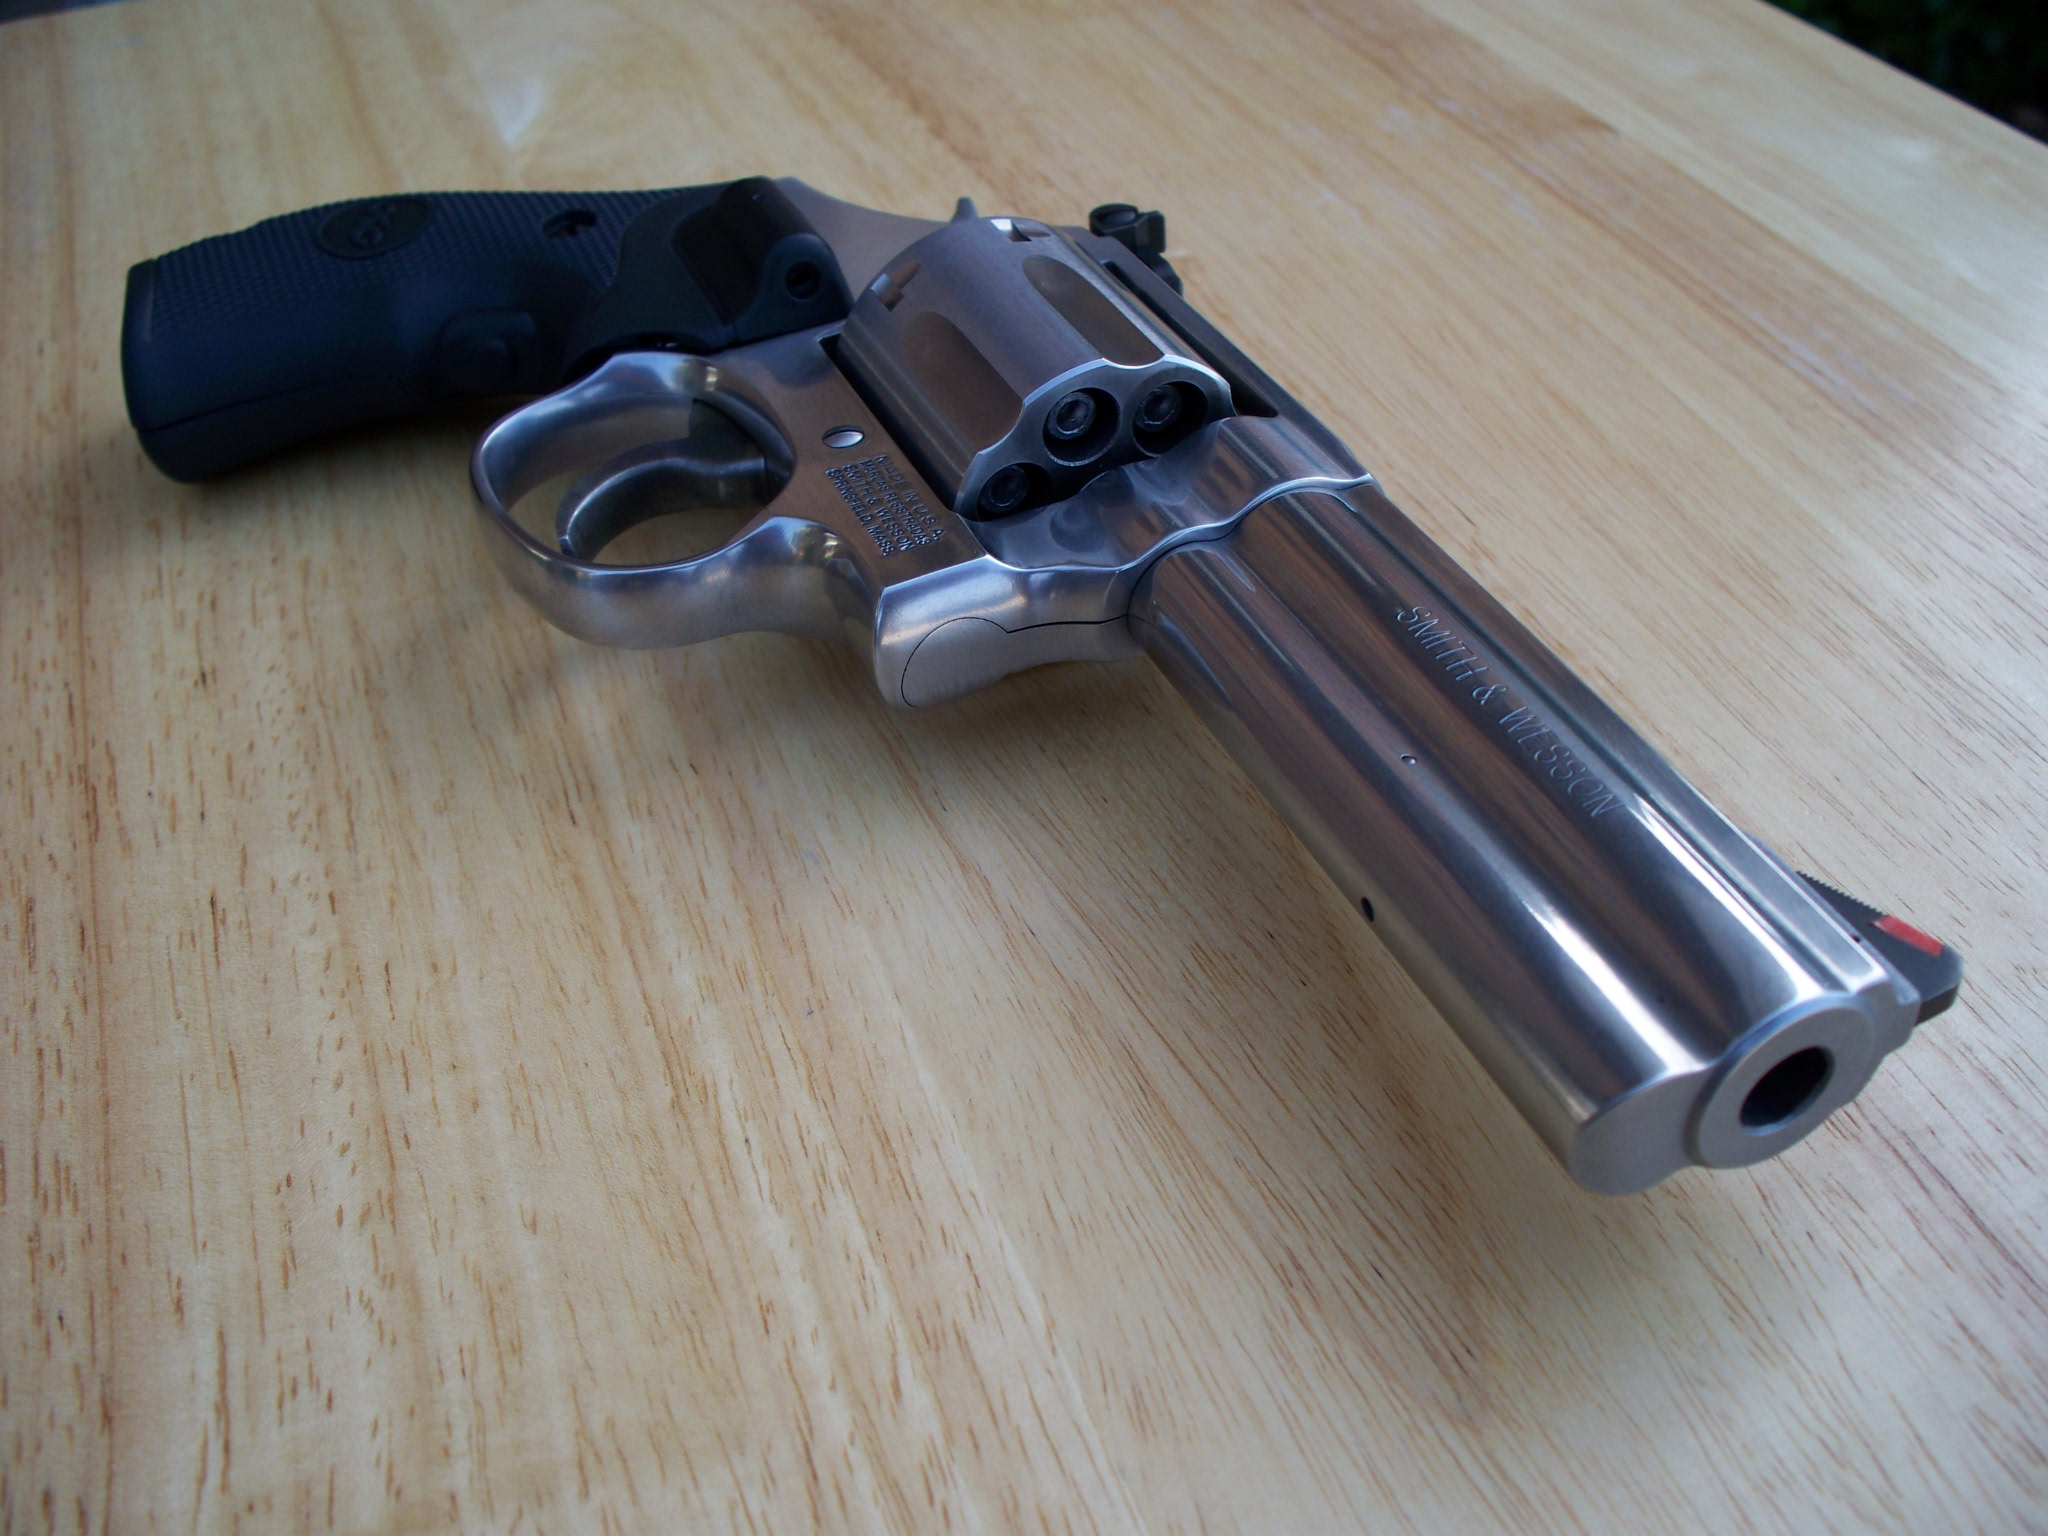 FileSmith Wesson 357 Model 686 Plus Barrel View